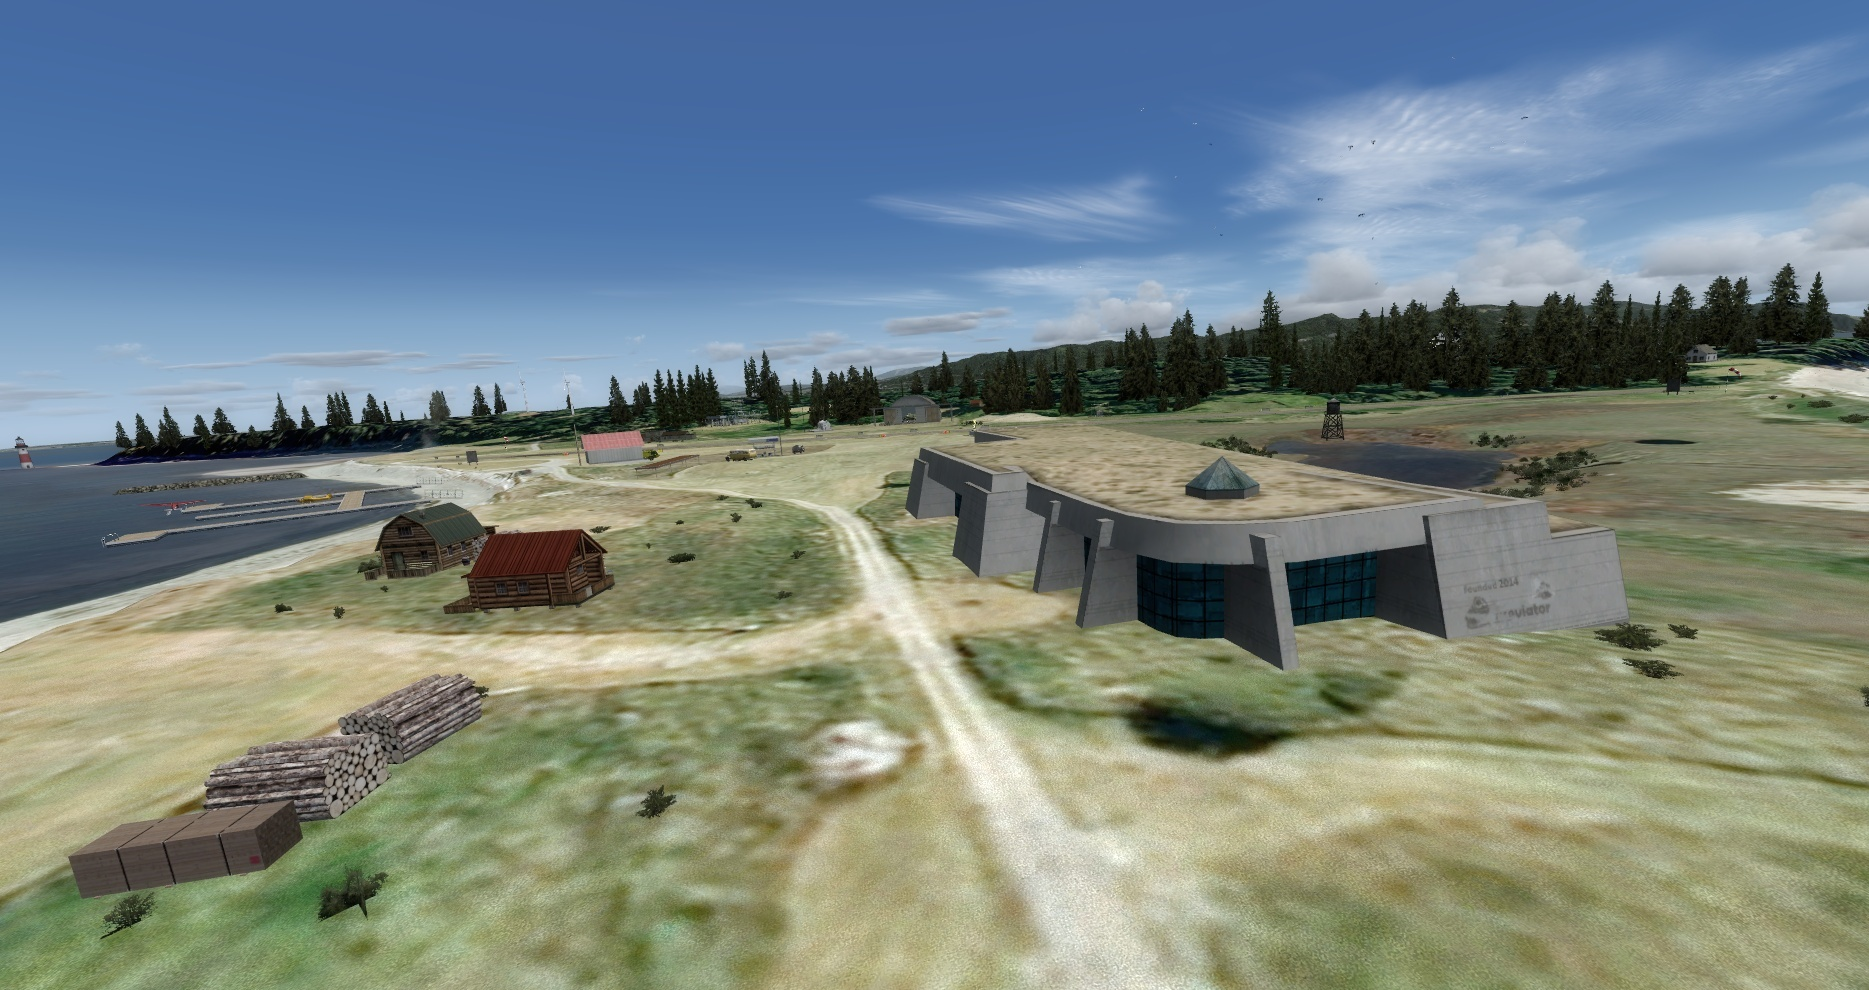 Mouseviator Private Island - antinuclear bunker and some beach houses :)